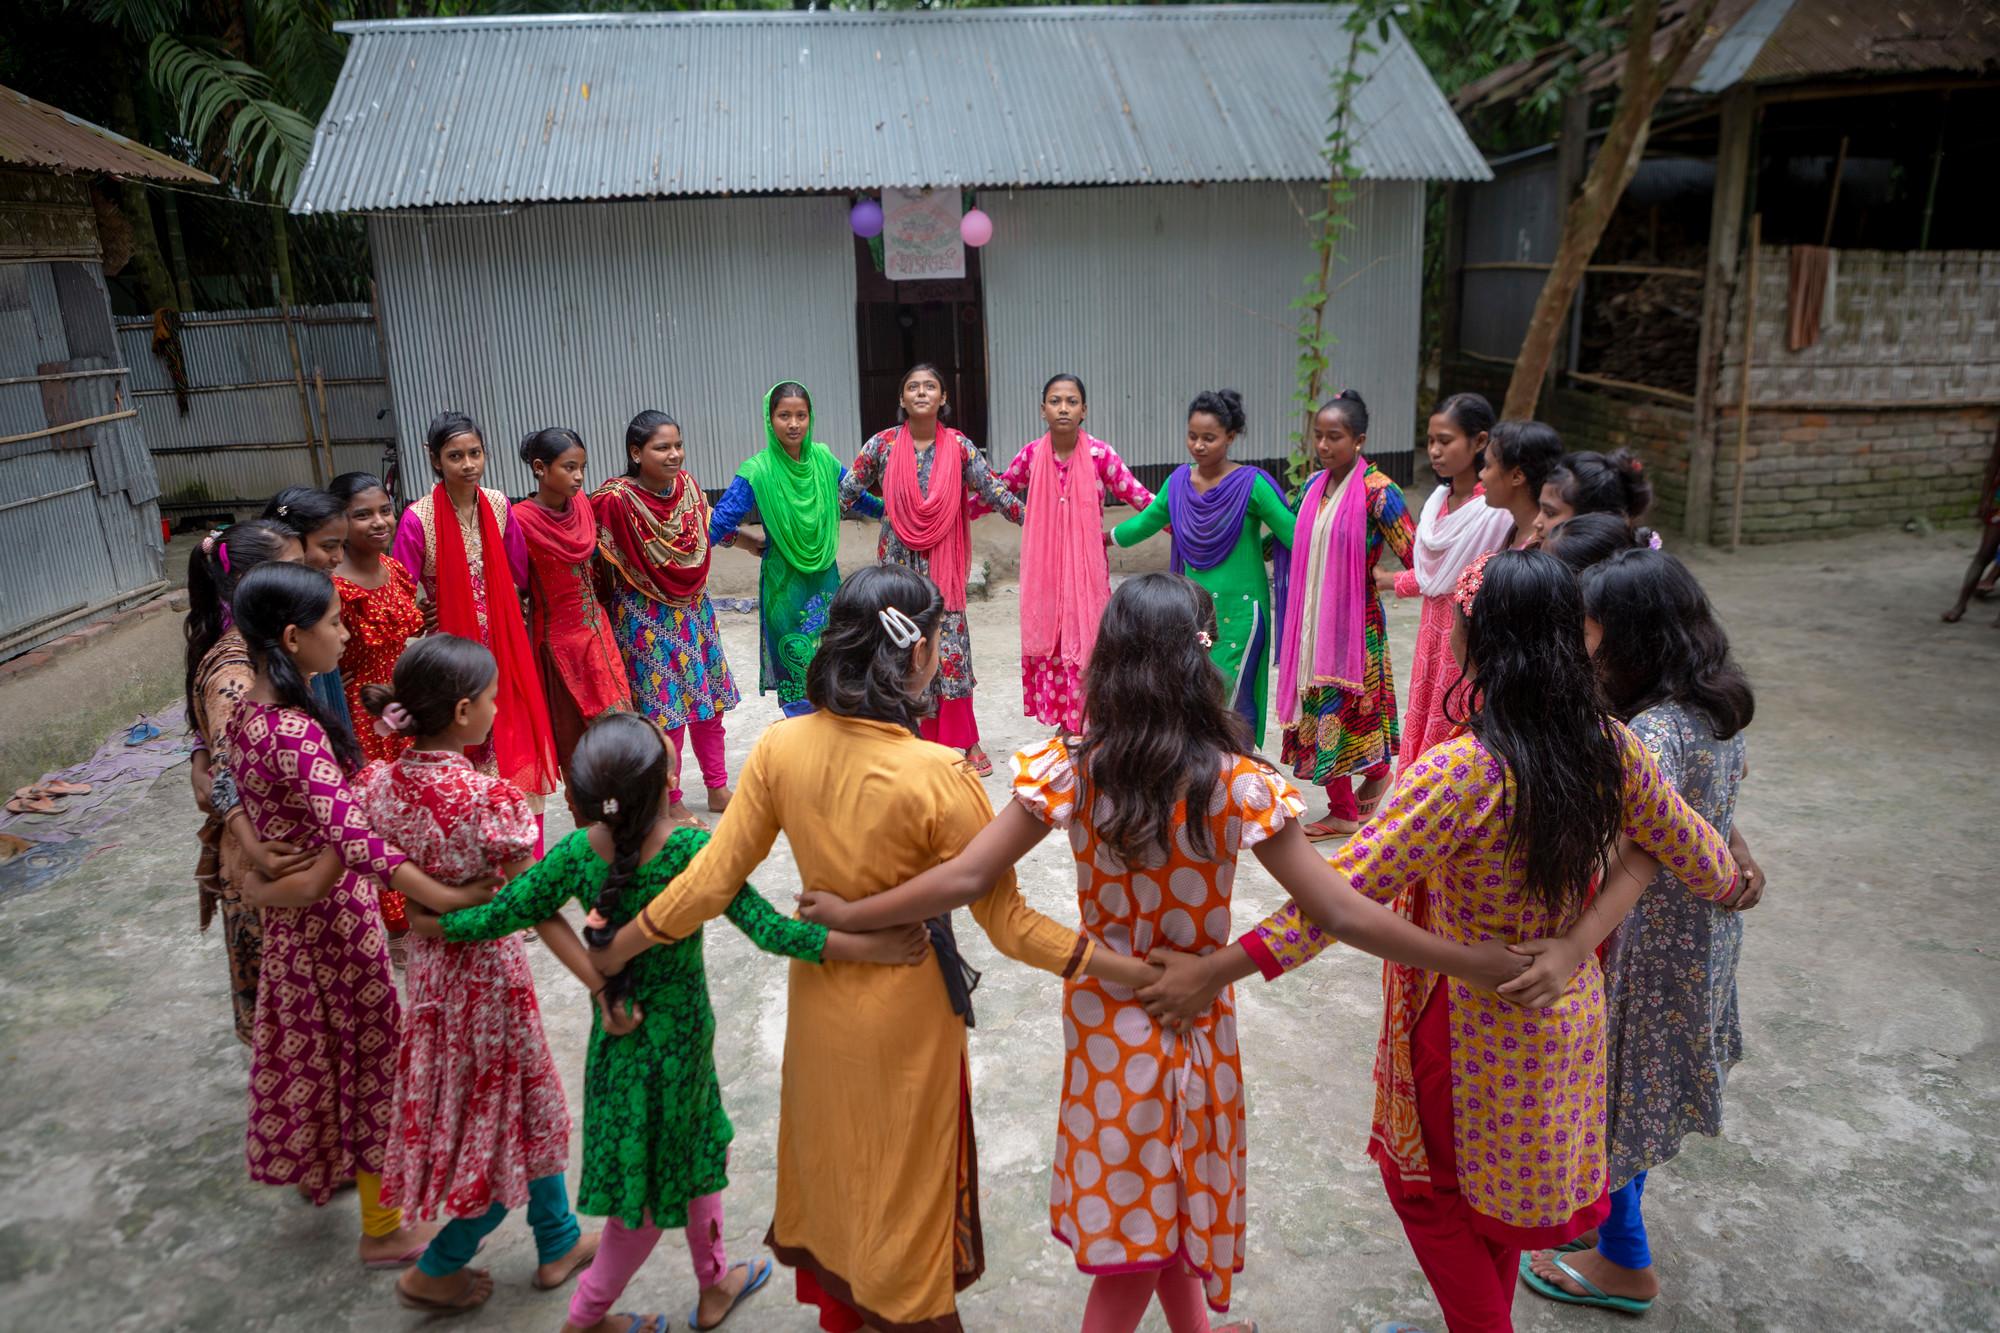 A group of adolescent girls stand in a circle outdoors in a village.